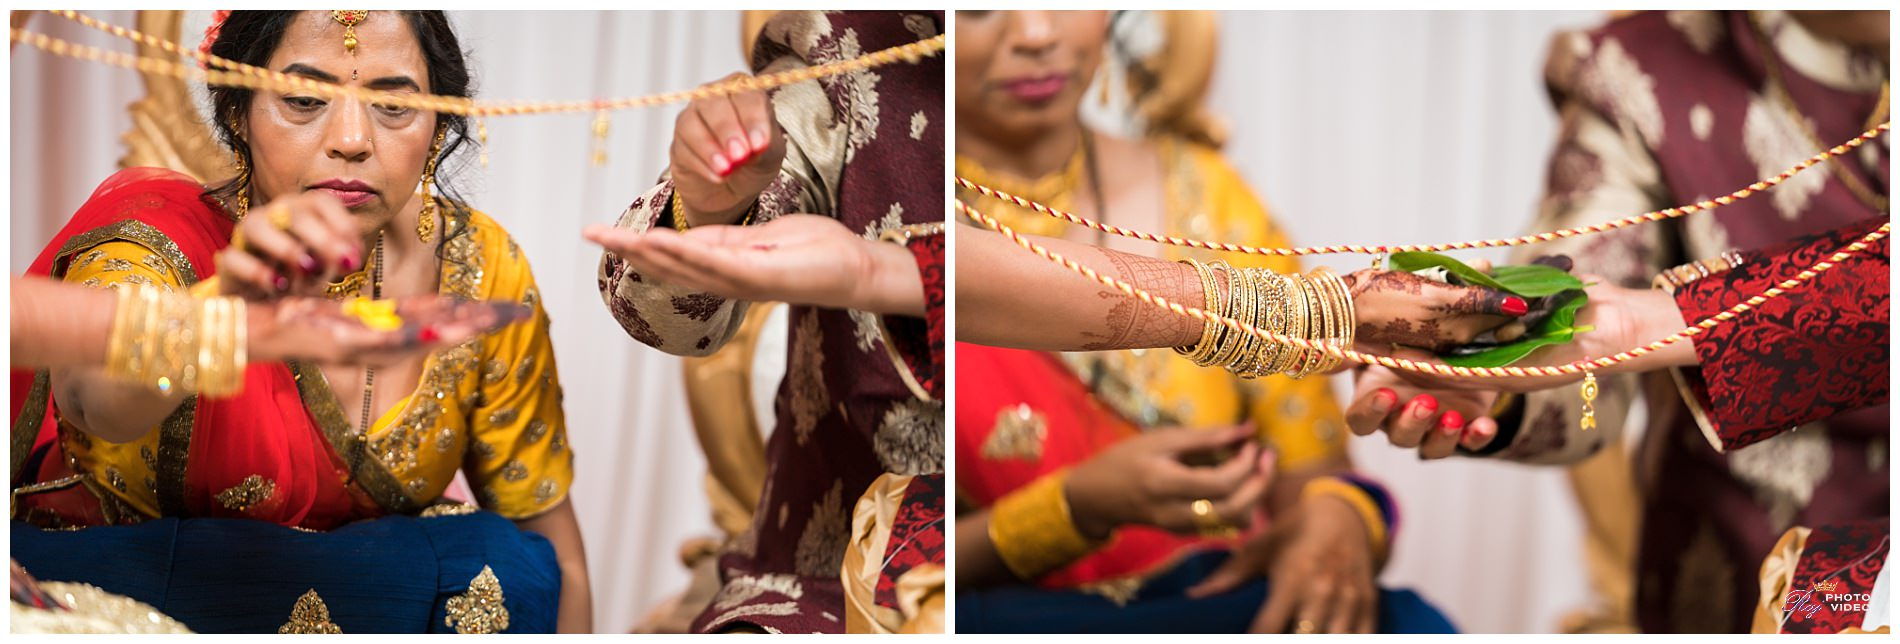 Aashirwad-Palace-Randolph-NJ-Hindu-Wedding-Ceremony-Khusbu-Jeff-13.jpg